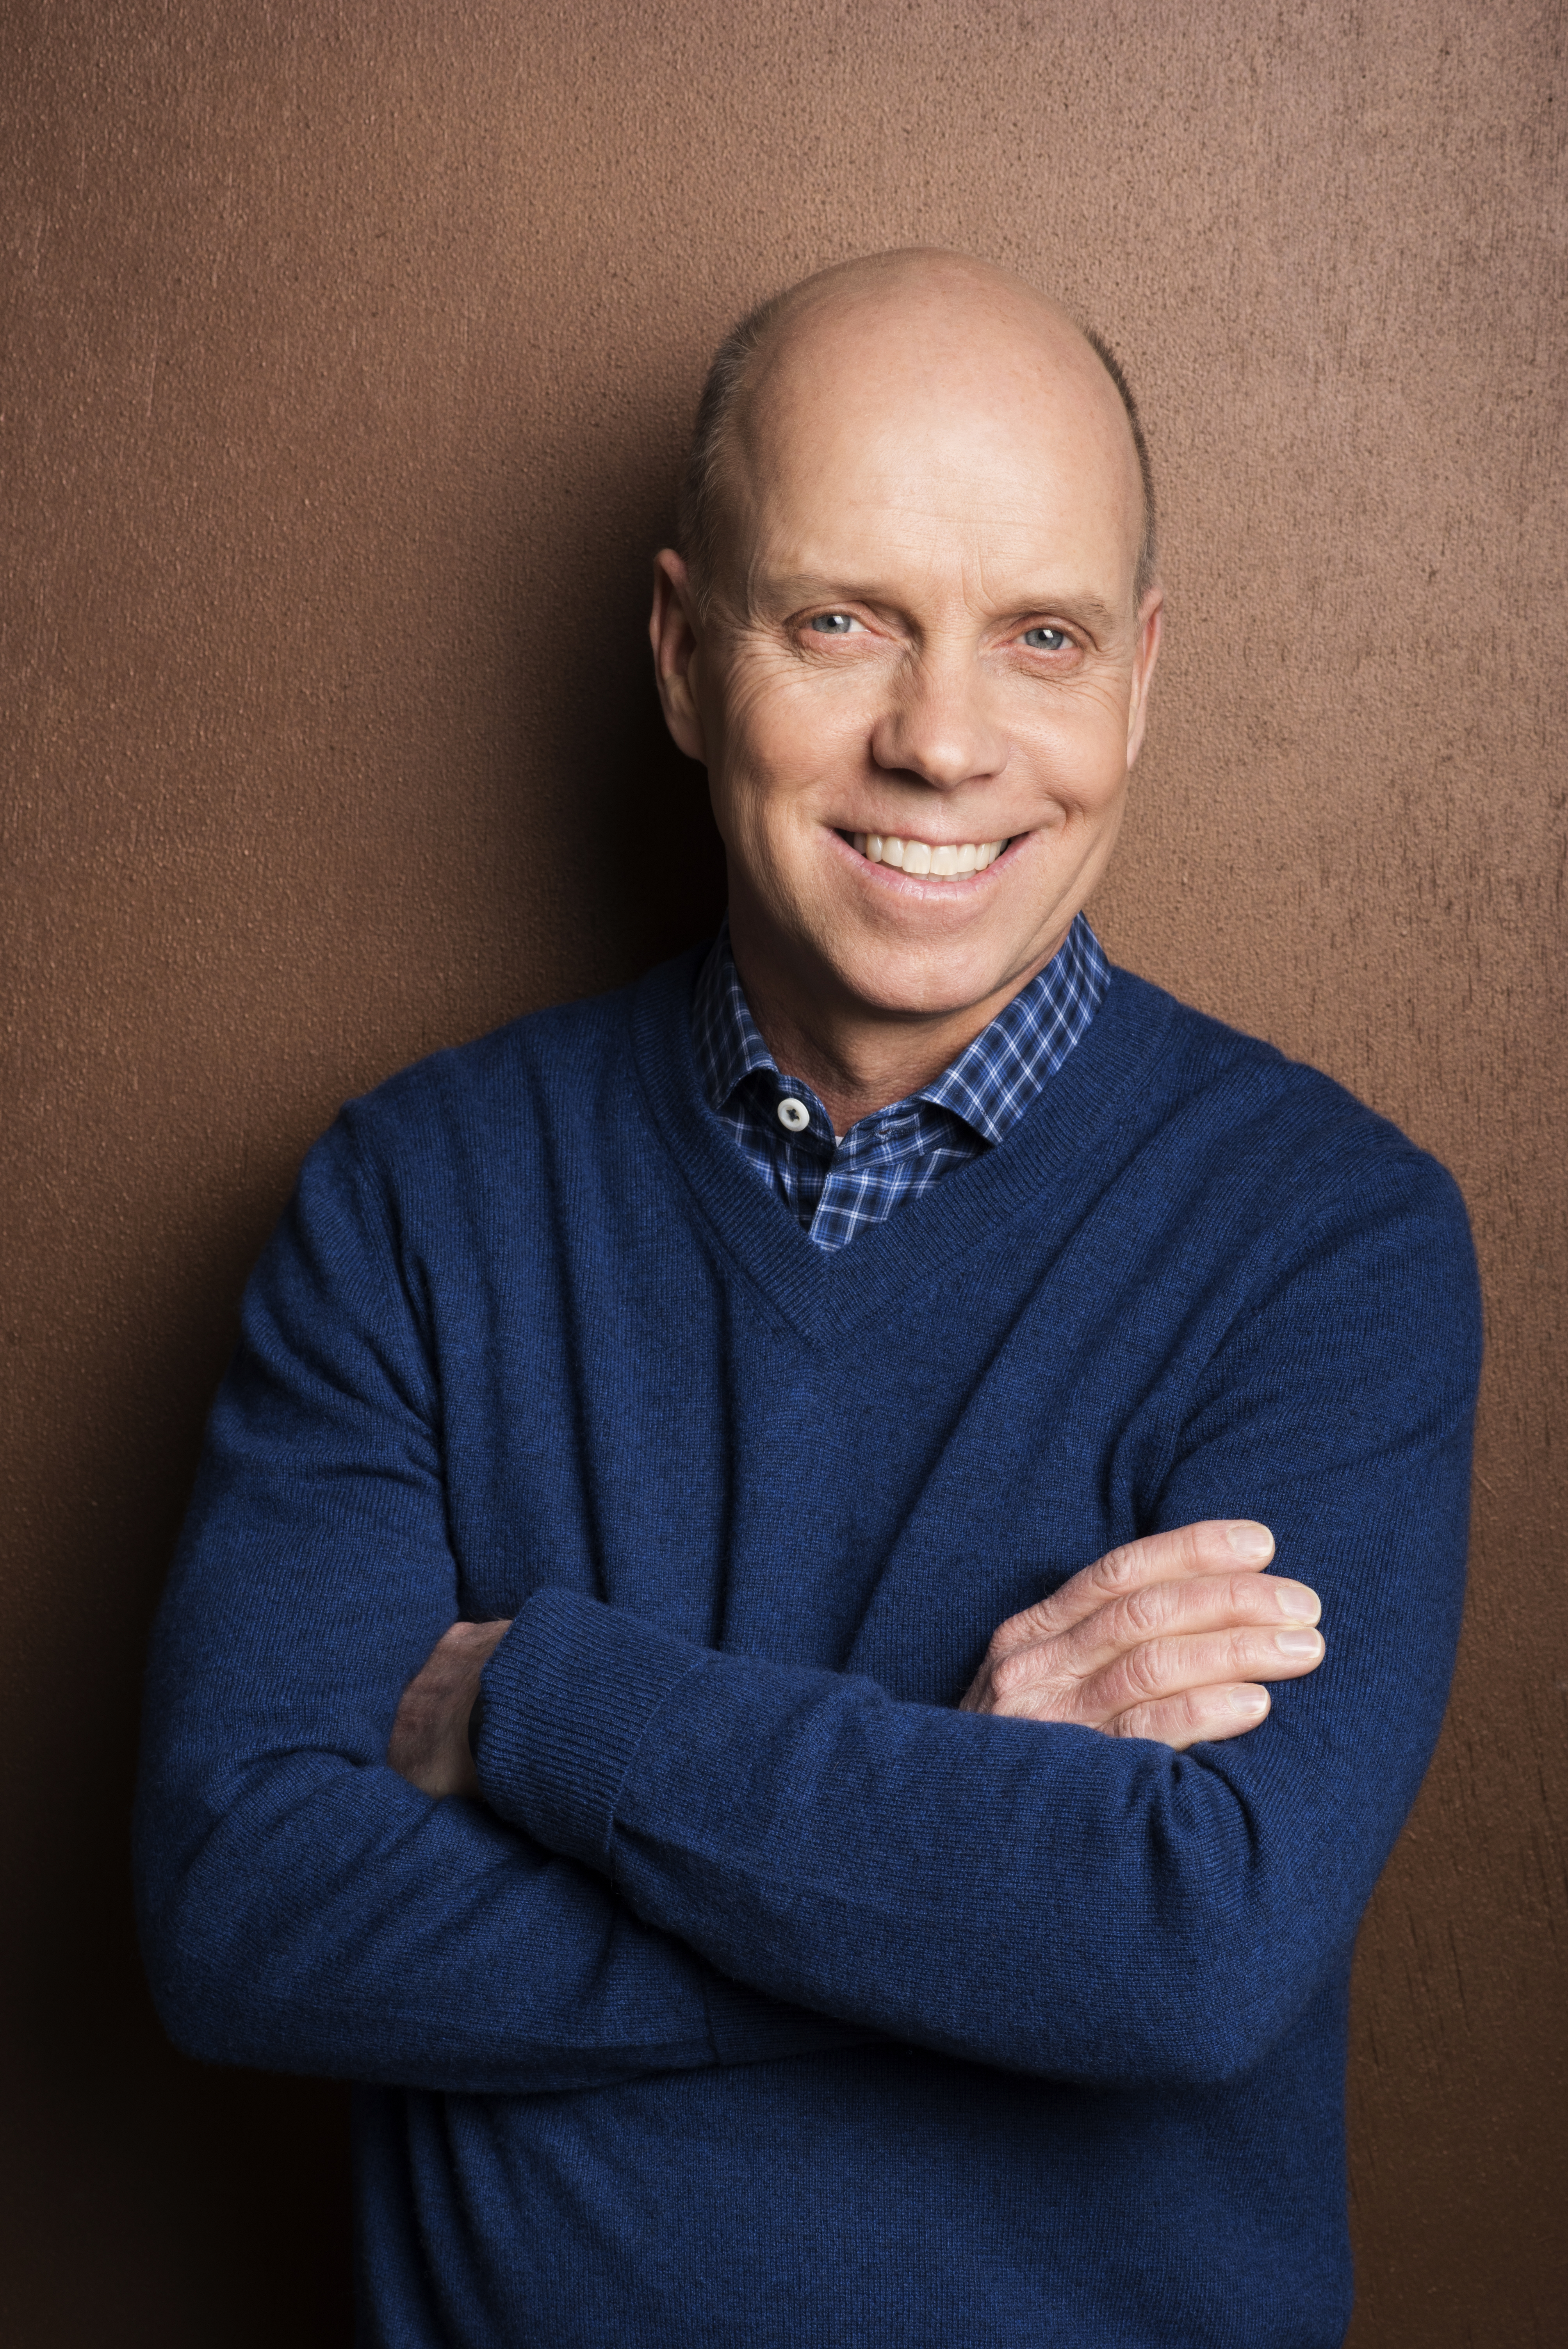 Scott Hamilton as featured on The Jesus Calling podcast